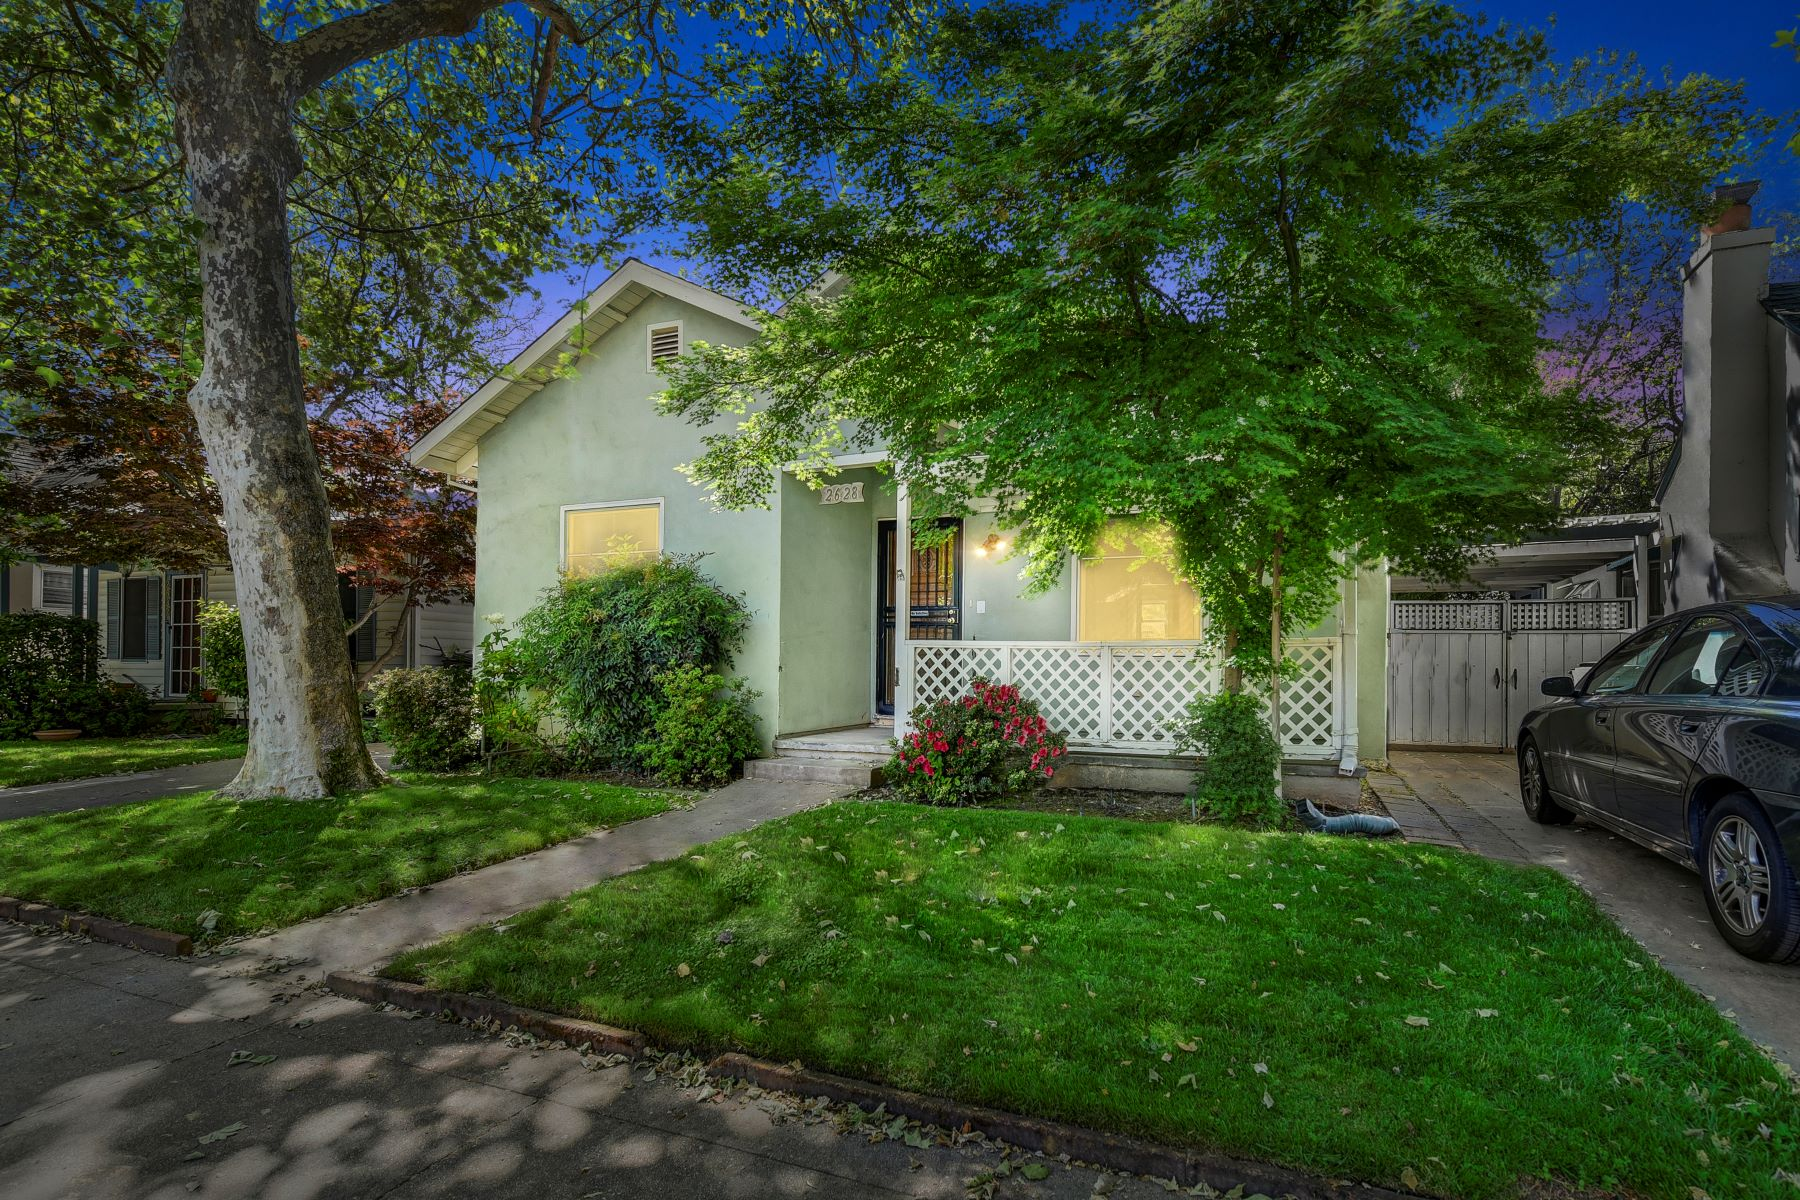 Single Family Homes for Sale at 2628 16th Street, Sacramento, CA 95818 2628 16th Street Sacramento, California 95818 United States